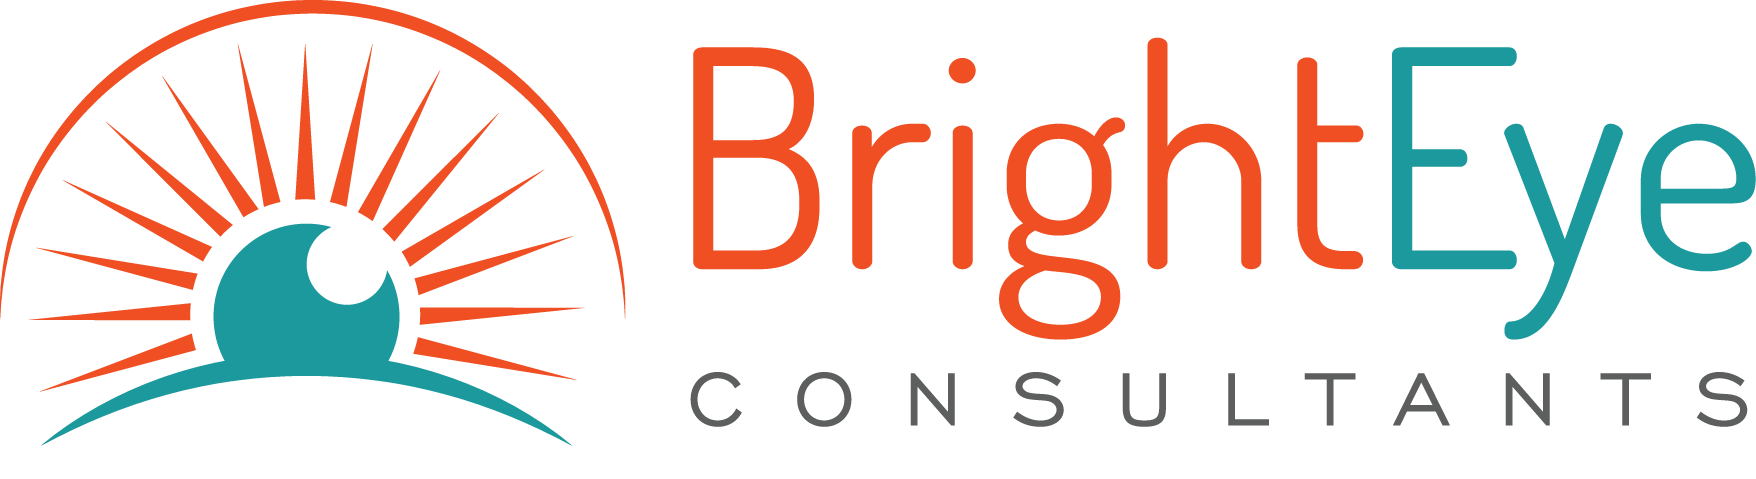 logo-orange-text.png